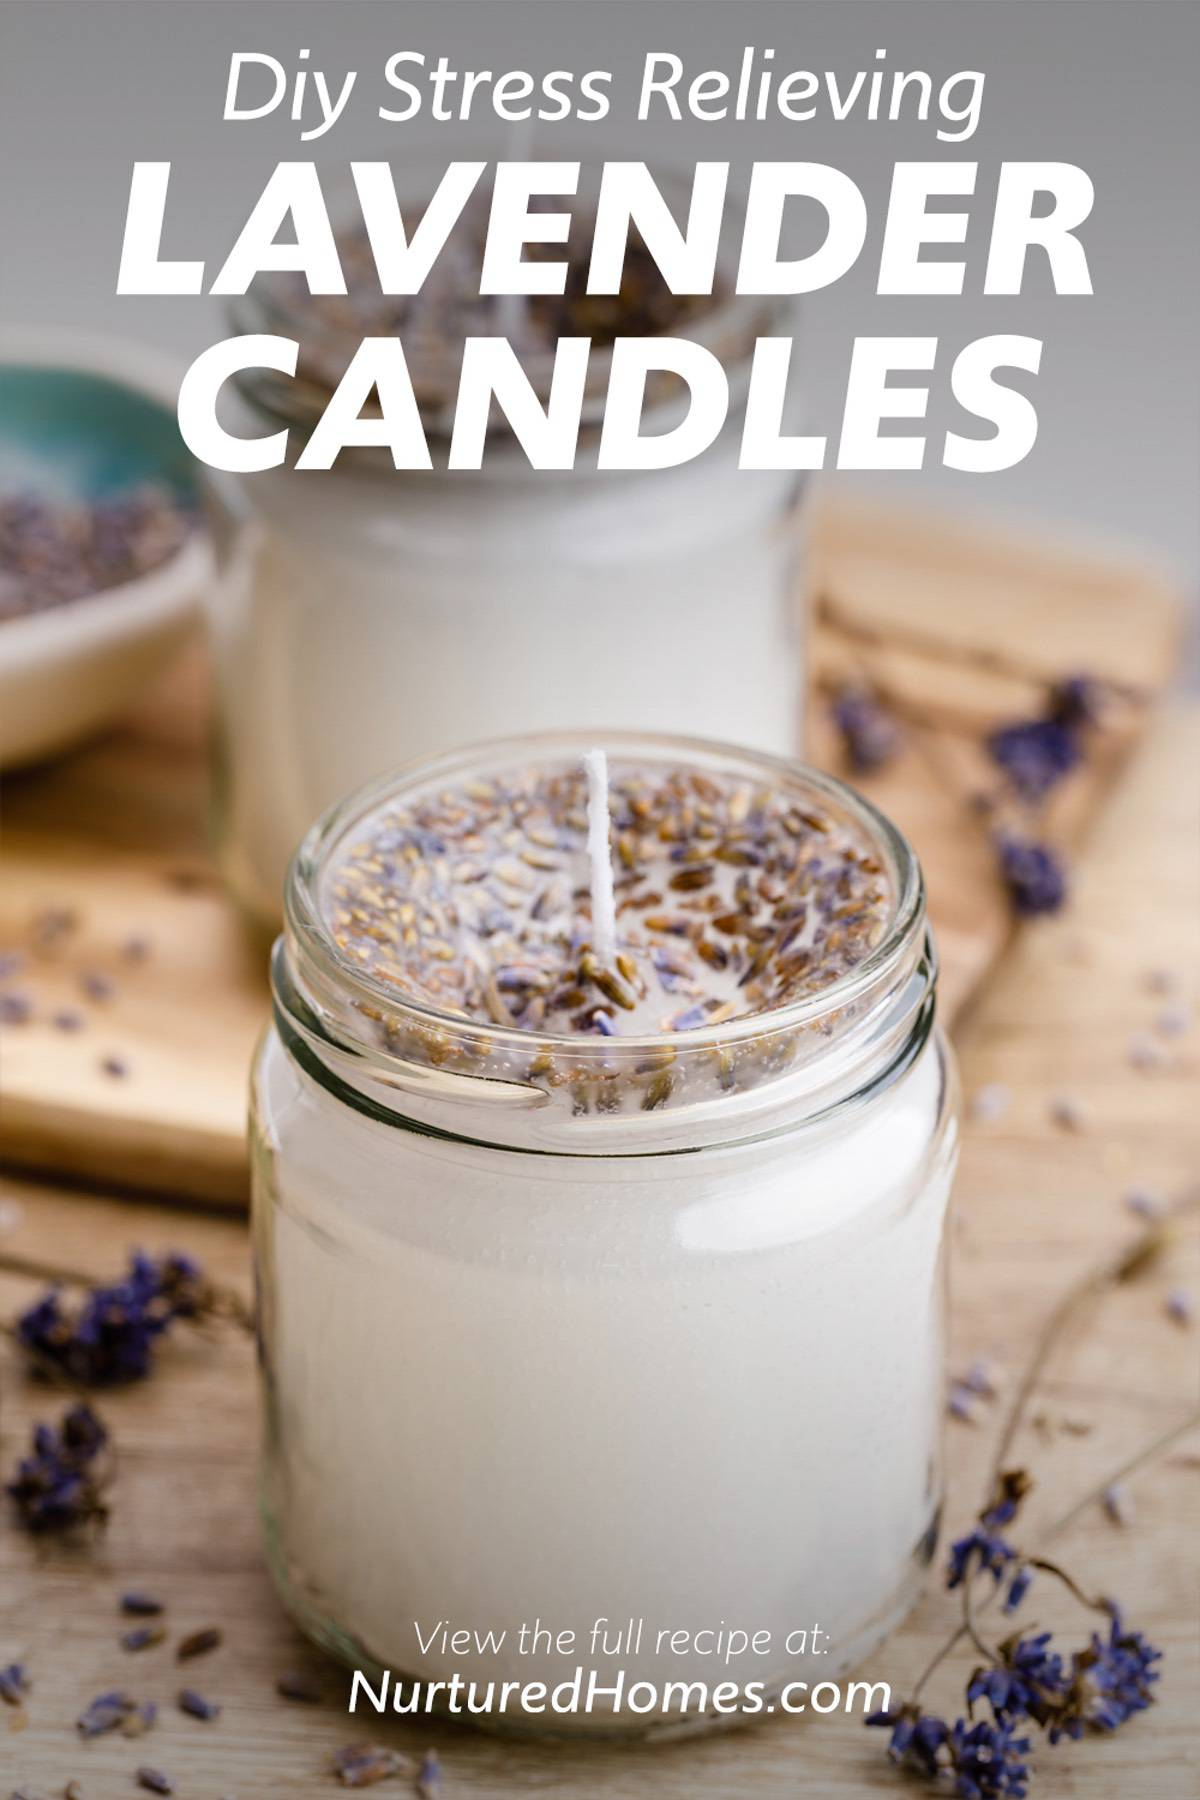 Easy Homemade Lavender Candles for Stress Relief and Relaxation